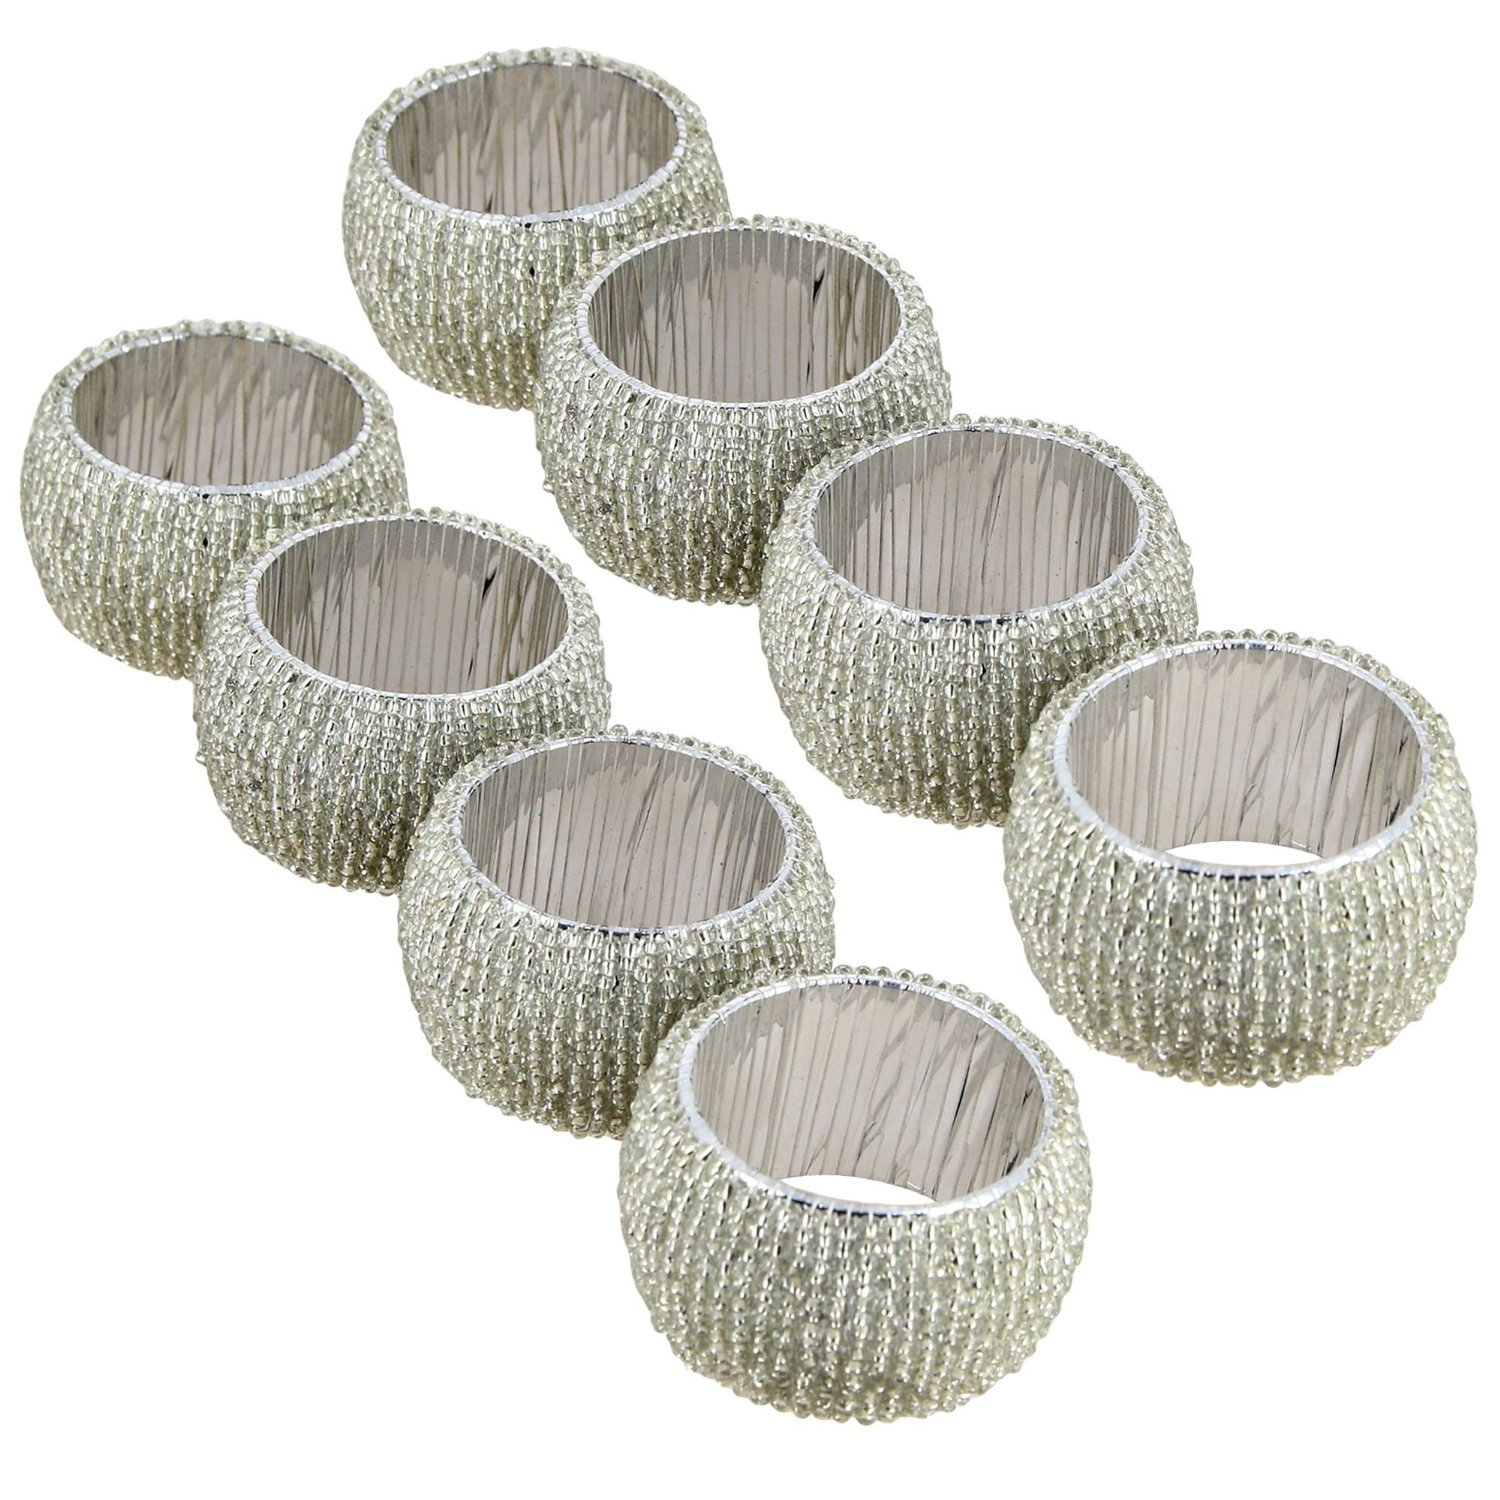 Lot of 8 Pieces Napkin Rings Silver Indian Handmade Glass Beaded For Special Occasions Dinners Parties Everyday - Set of 8 Rings